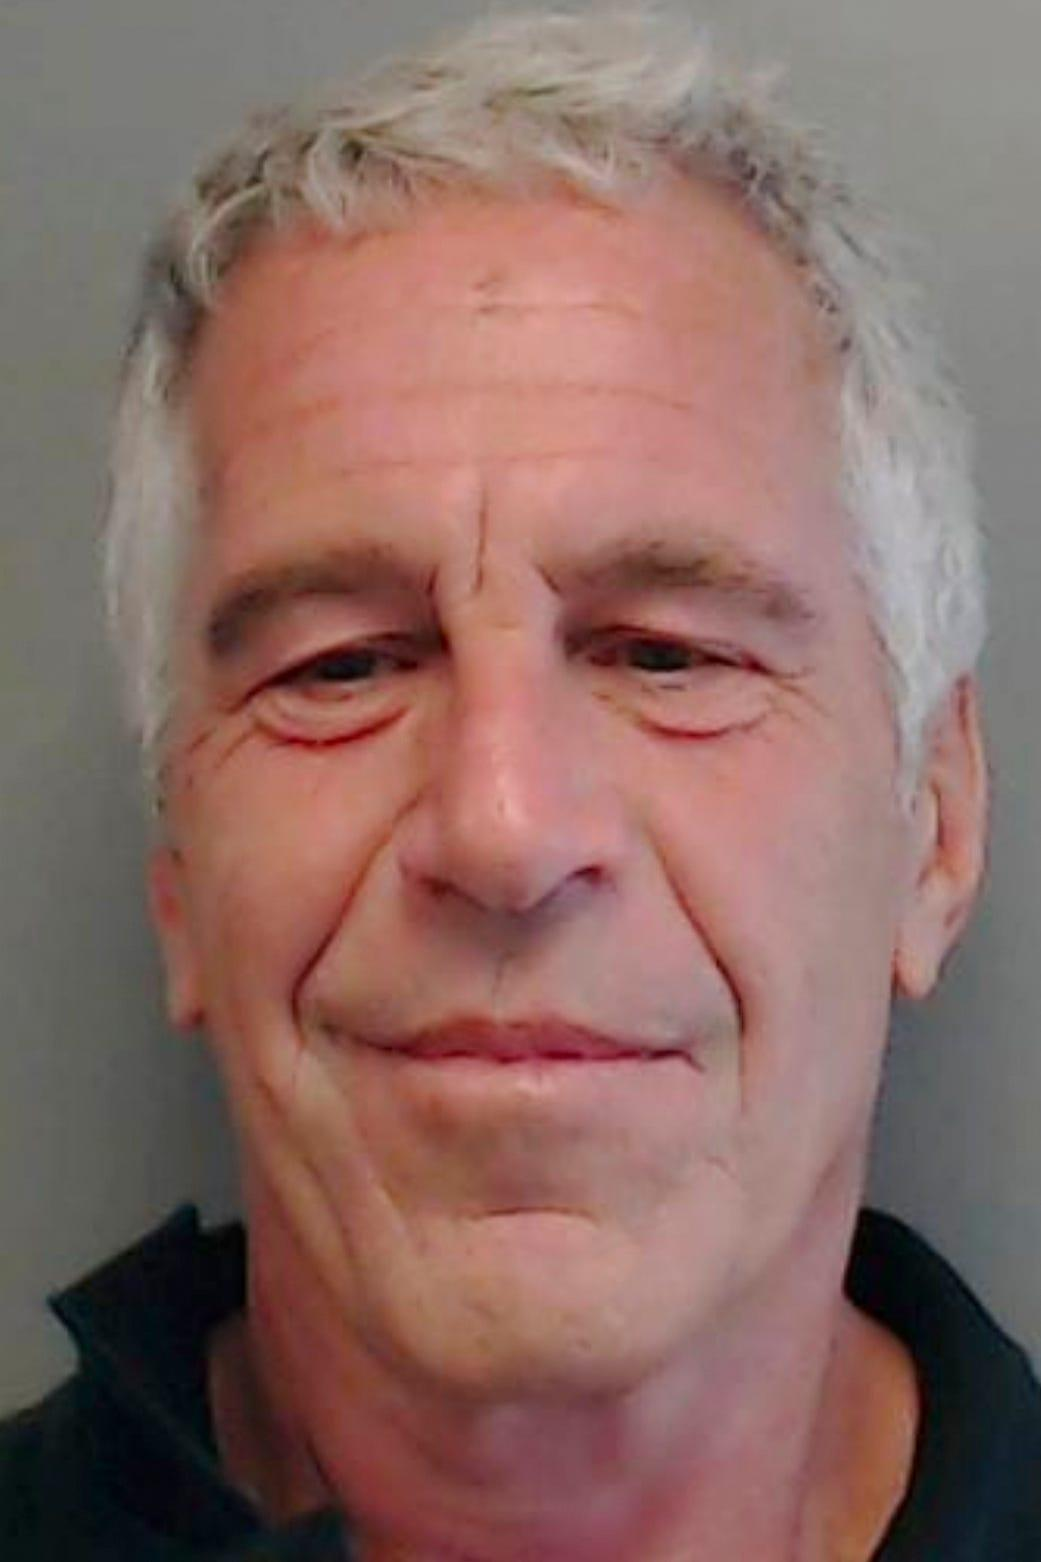 Jeffrey Epstein is 'gone, but justice still must be served': Accusers say they feel robbed